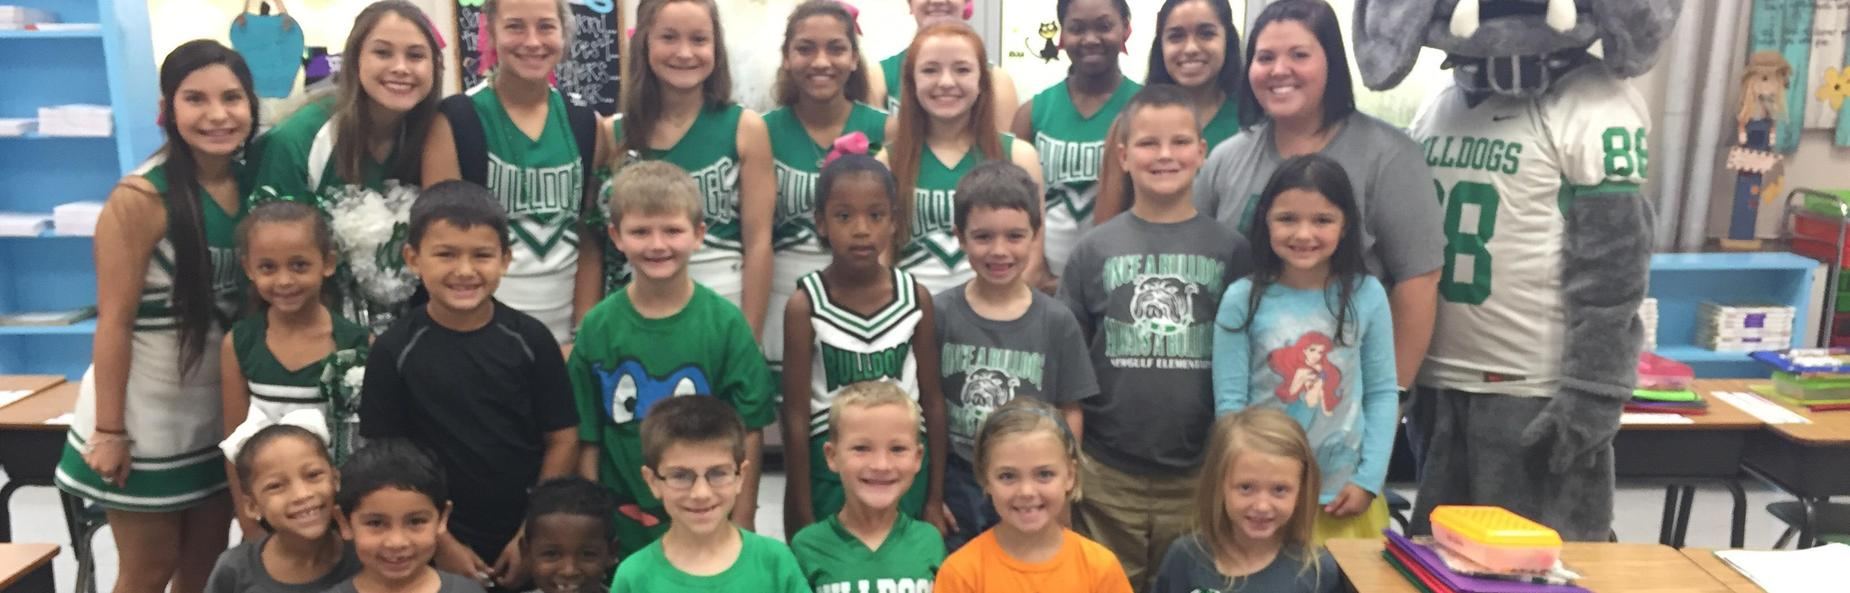 children with high school cheerleaders and mascot